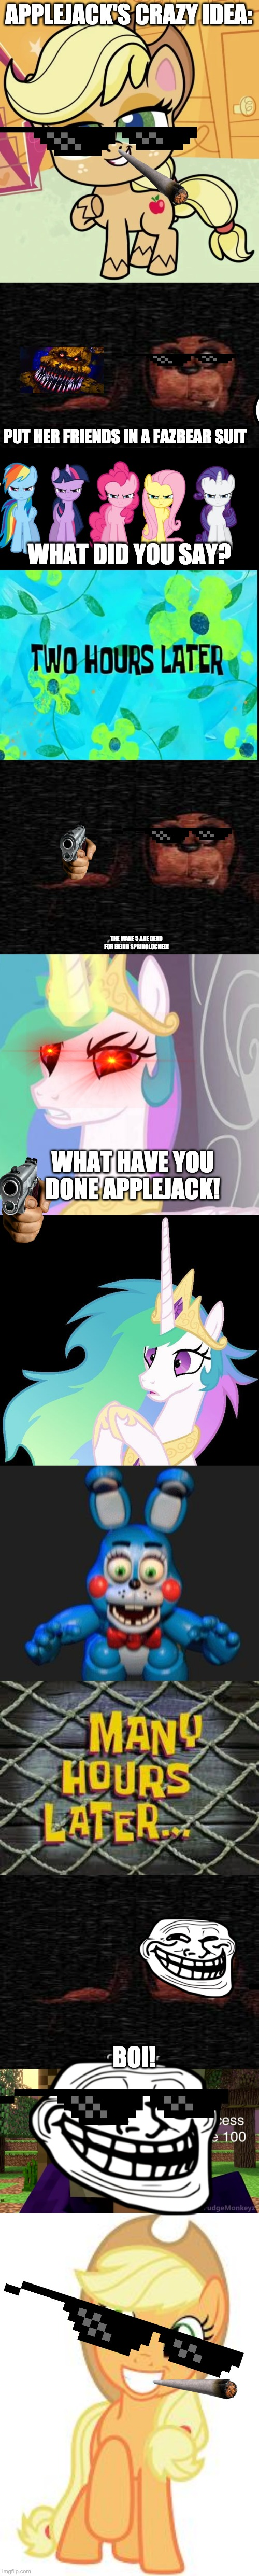 Applejack kills MLP in Fnaf 2 by springlock suits |  APPLEJACK'S CRAZY IDEA:; PUT HER FRIENDS IN A FAZBEAR SUIT; WHAT DID YOU SAY? THE MANE 5 ARE DEAD FOR BEING SPRINGLOCKED! WHAT HAVE YOU DONE APPLEJACK! BOI! | image tagged in fnaf 2 game over screen,angry ponies mane 6,fnaf2,applejack,fnaf 4,mlp meme | made w/ Imgflip meme maker